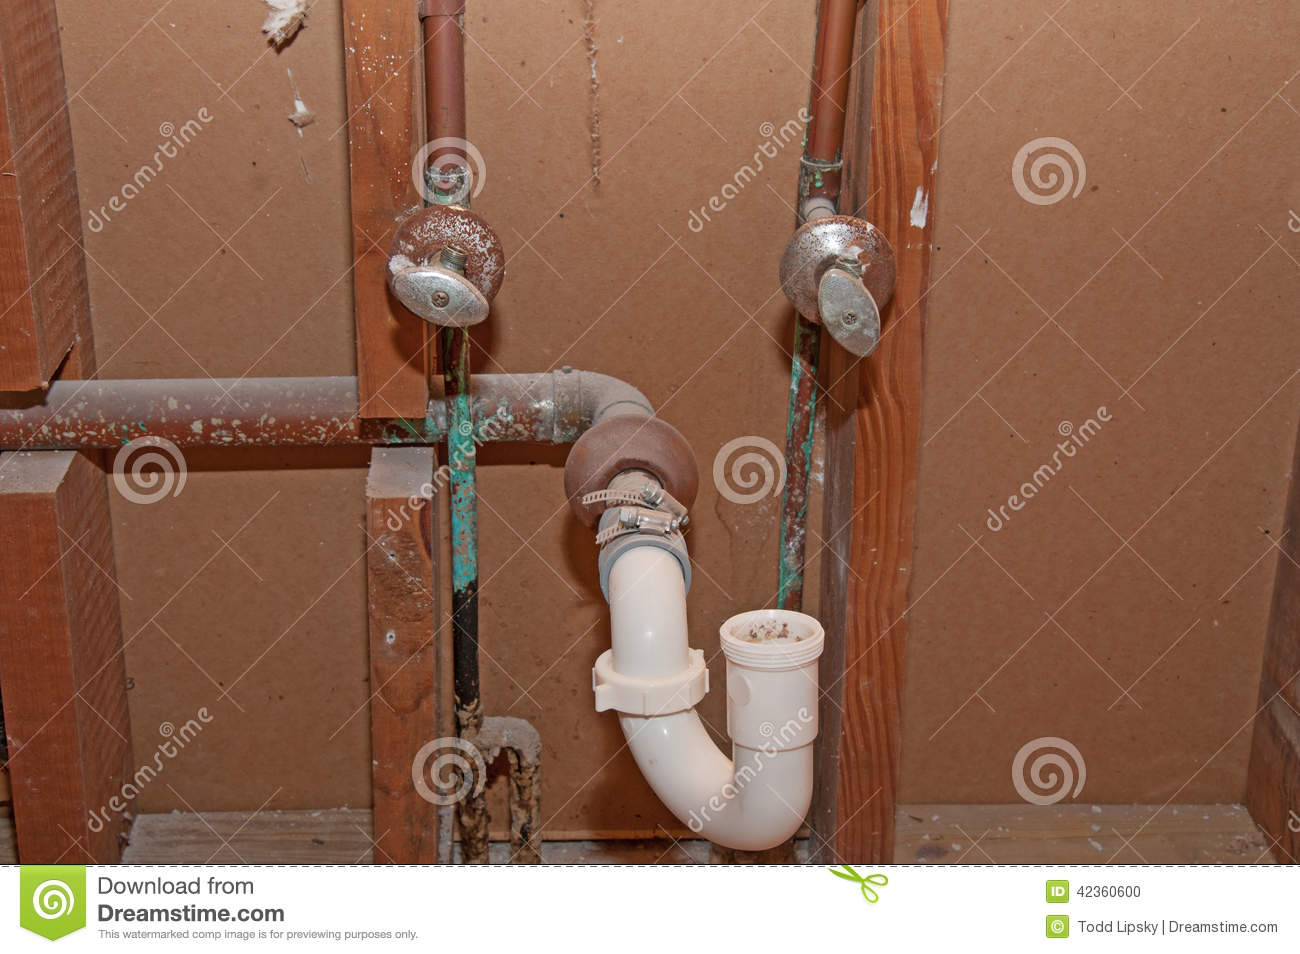 Plumbing - Old Bathroom Pipes Stock Photo - Image of ...